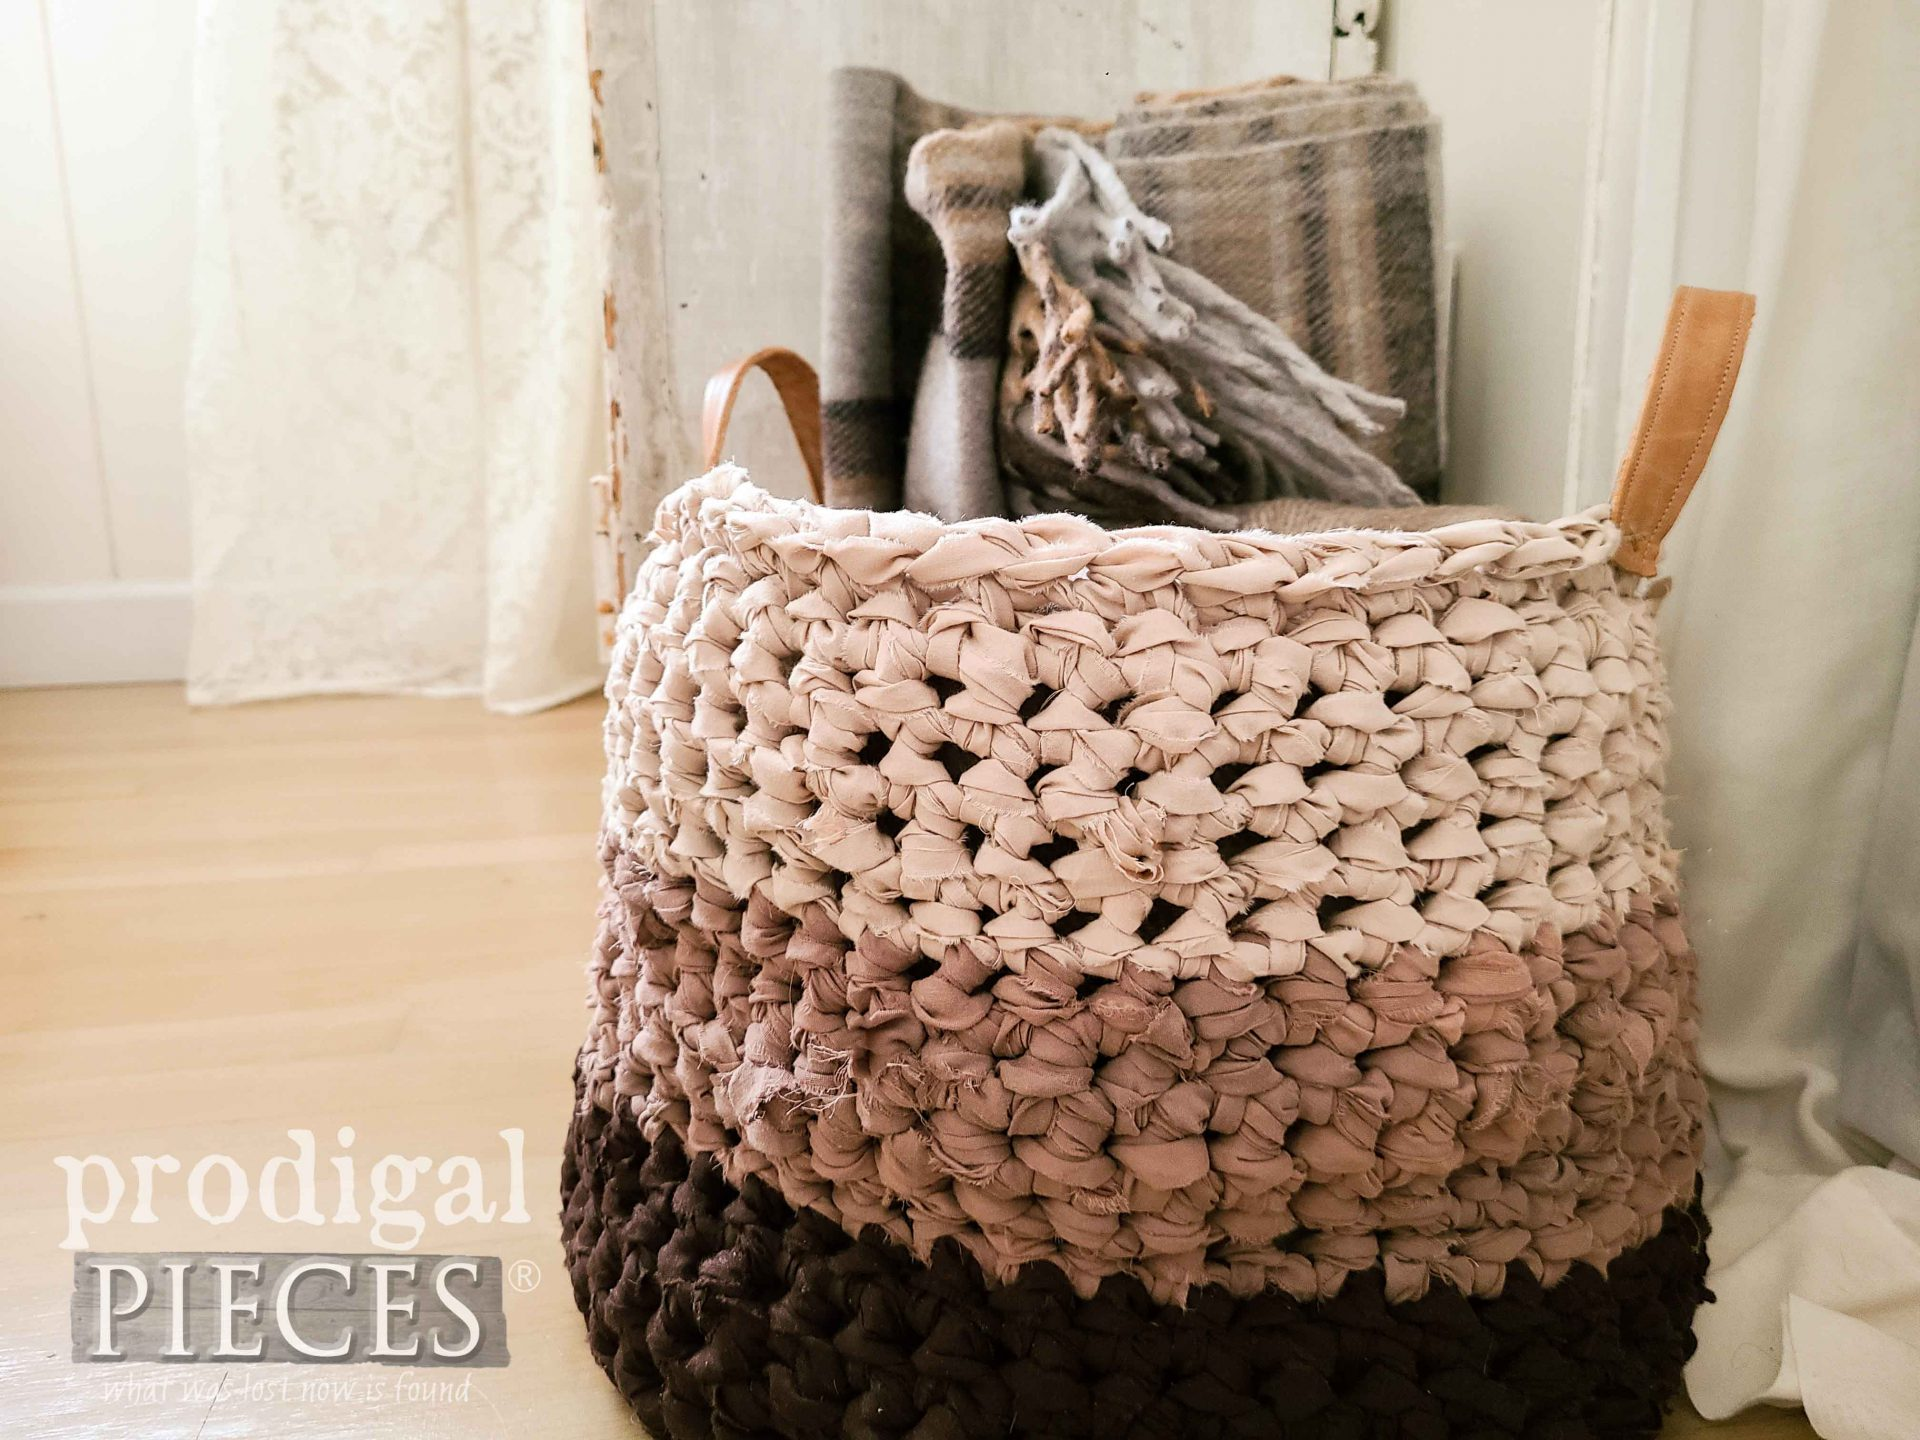 Farmhouse Style Crochet Basket from Upcycled Bed Sheets by Larissa of Prodigal Pieces | prodigalpieces.com #prodigalpieces #diy #crafts #basket #handmade #crochet #farmhouse